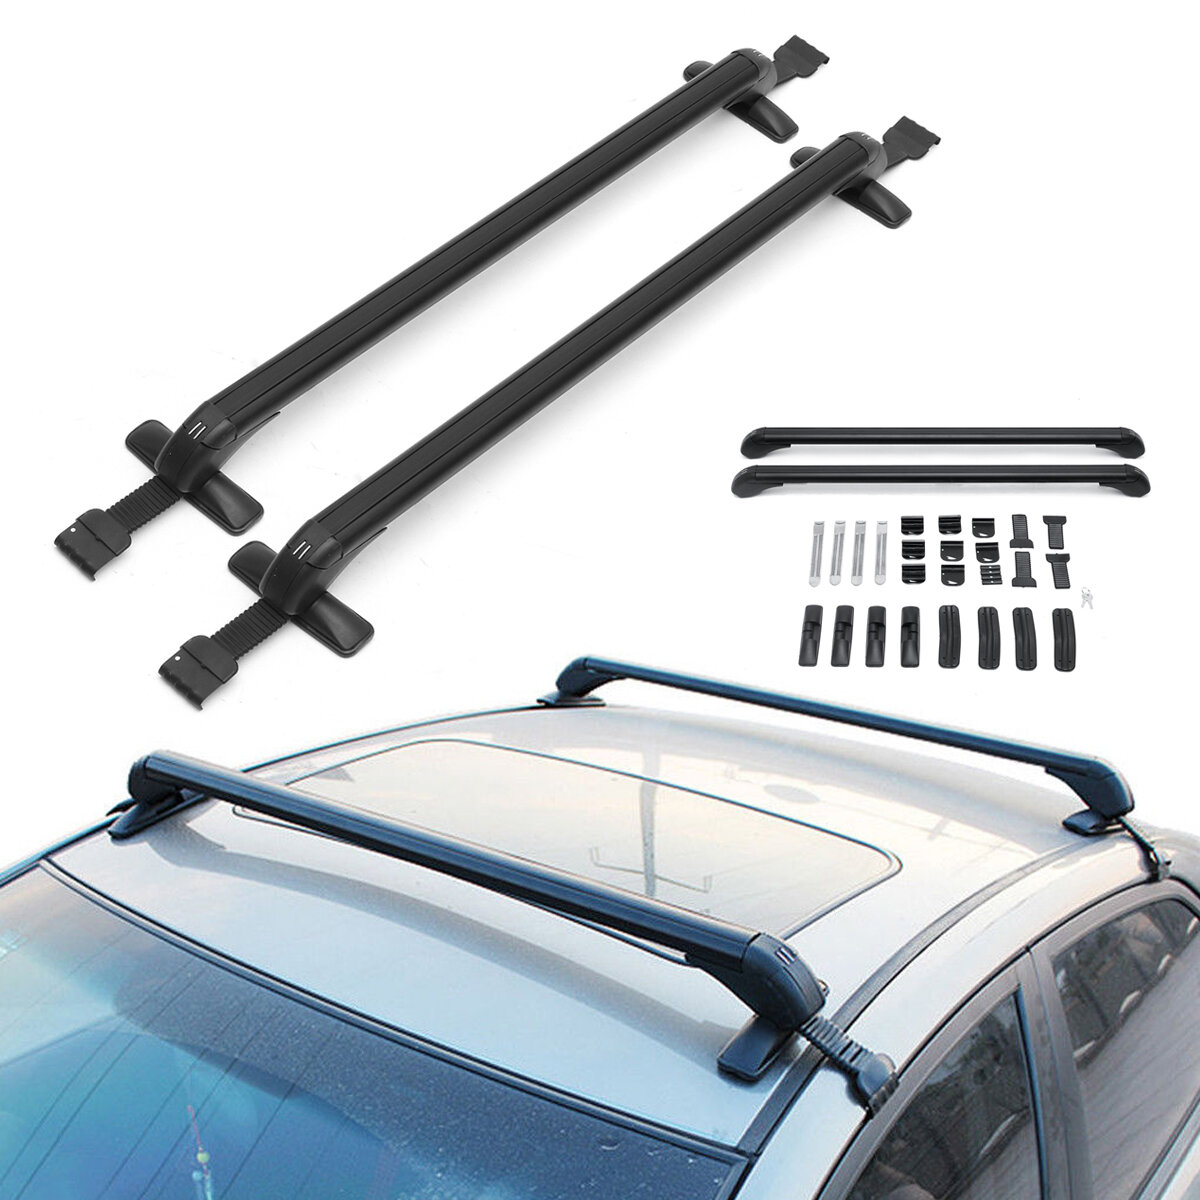 105cm Anti Theft Lock Car Roof Bars Without Rails Lockable Rack Luggage Carrier